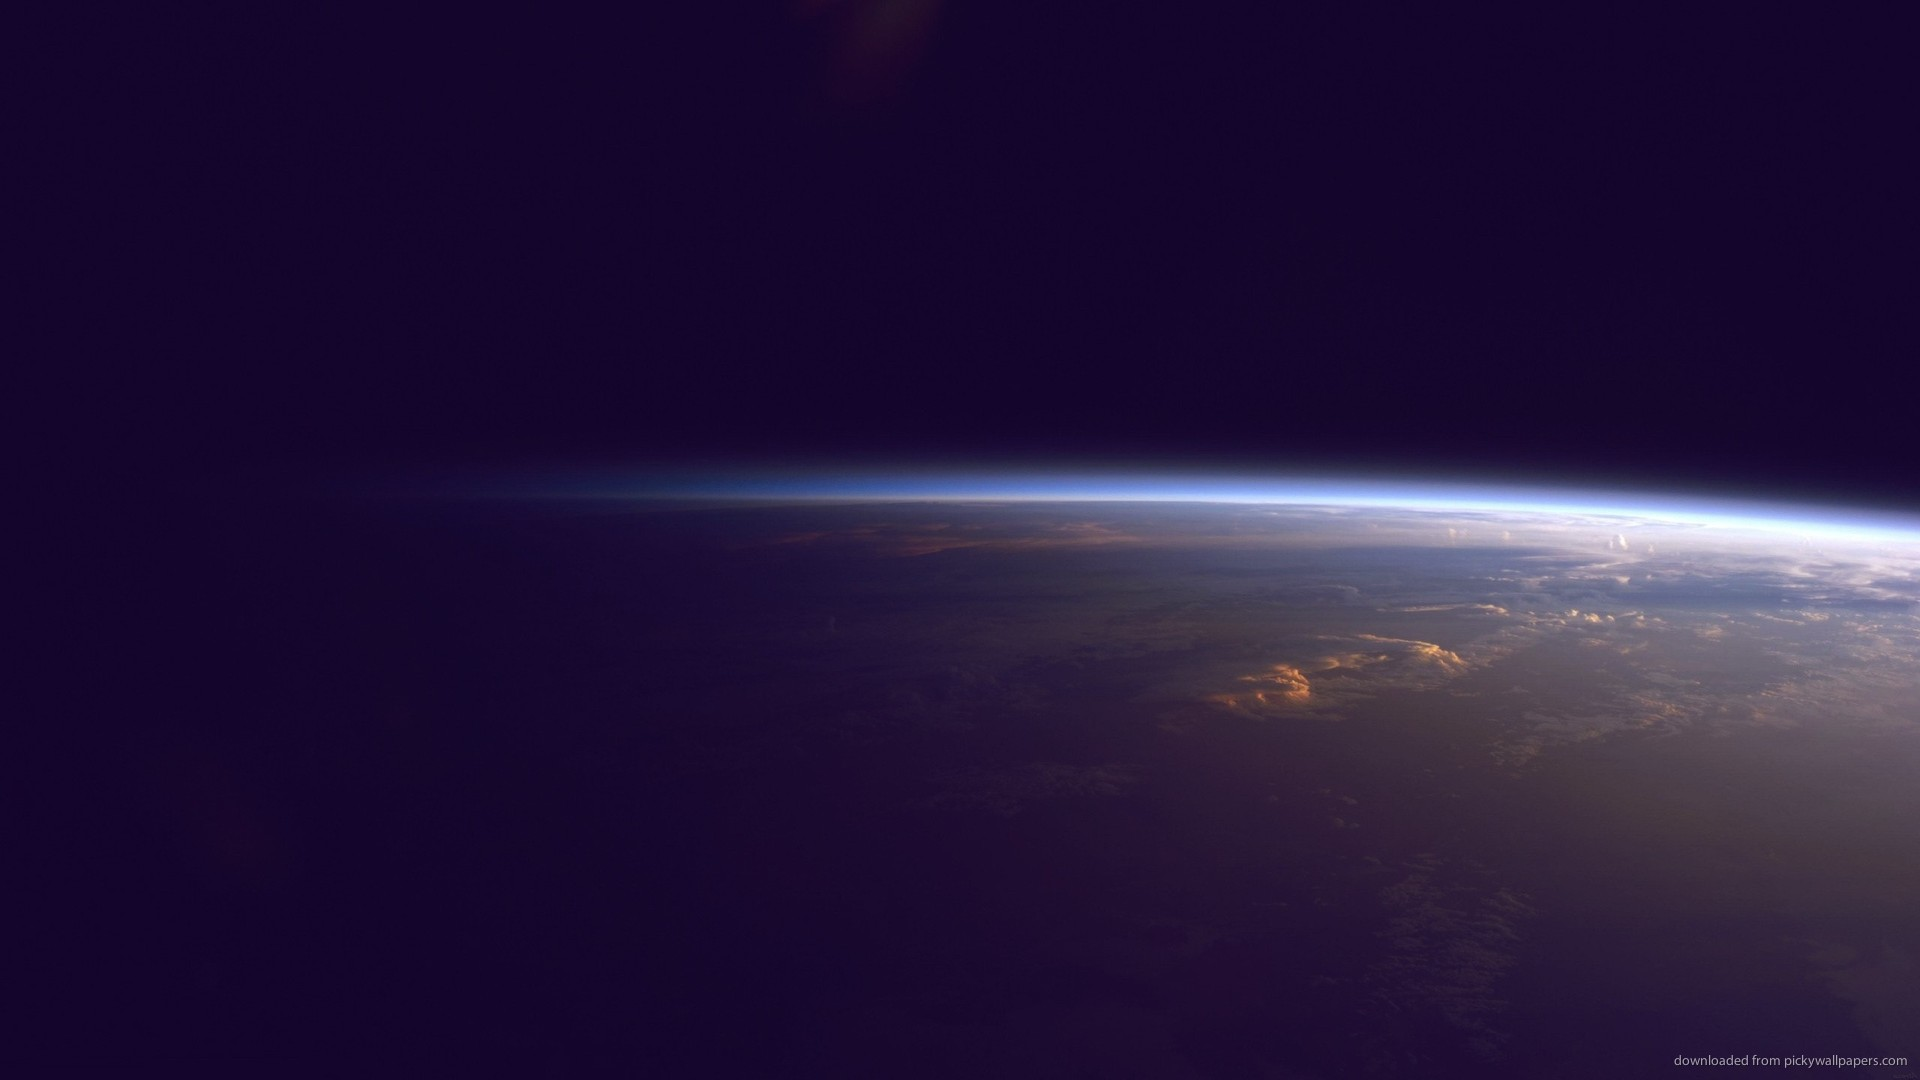 Download 1920x1080 Earth Horizon From Space Wallpaper 1920x1080